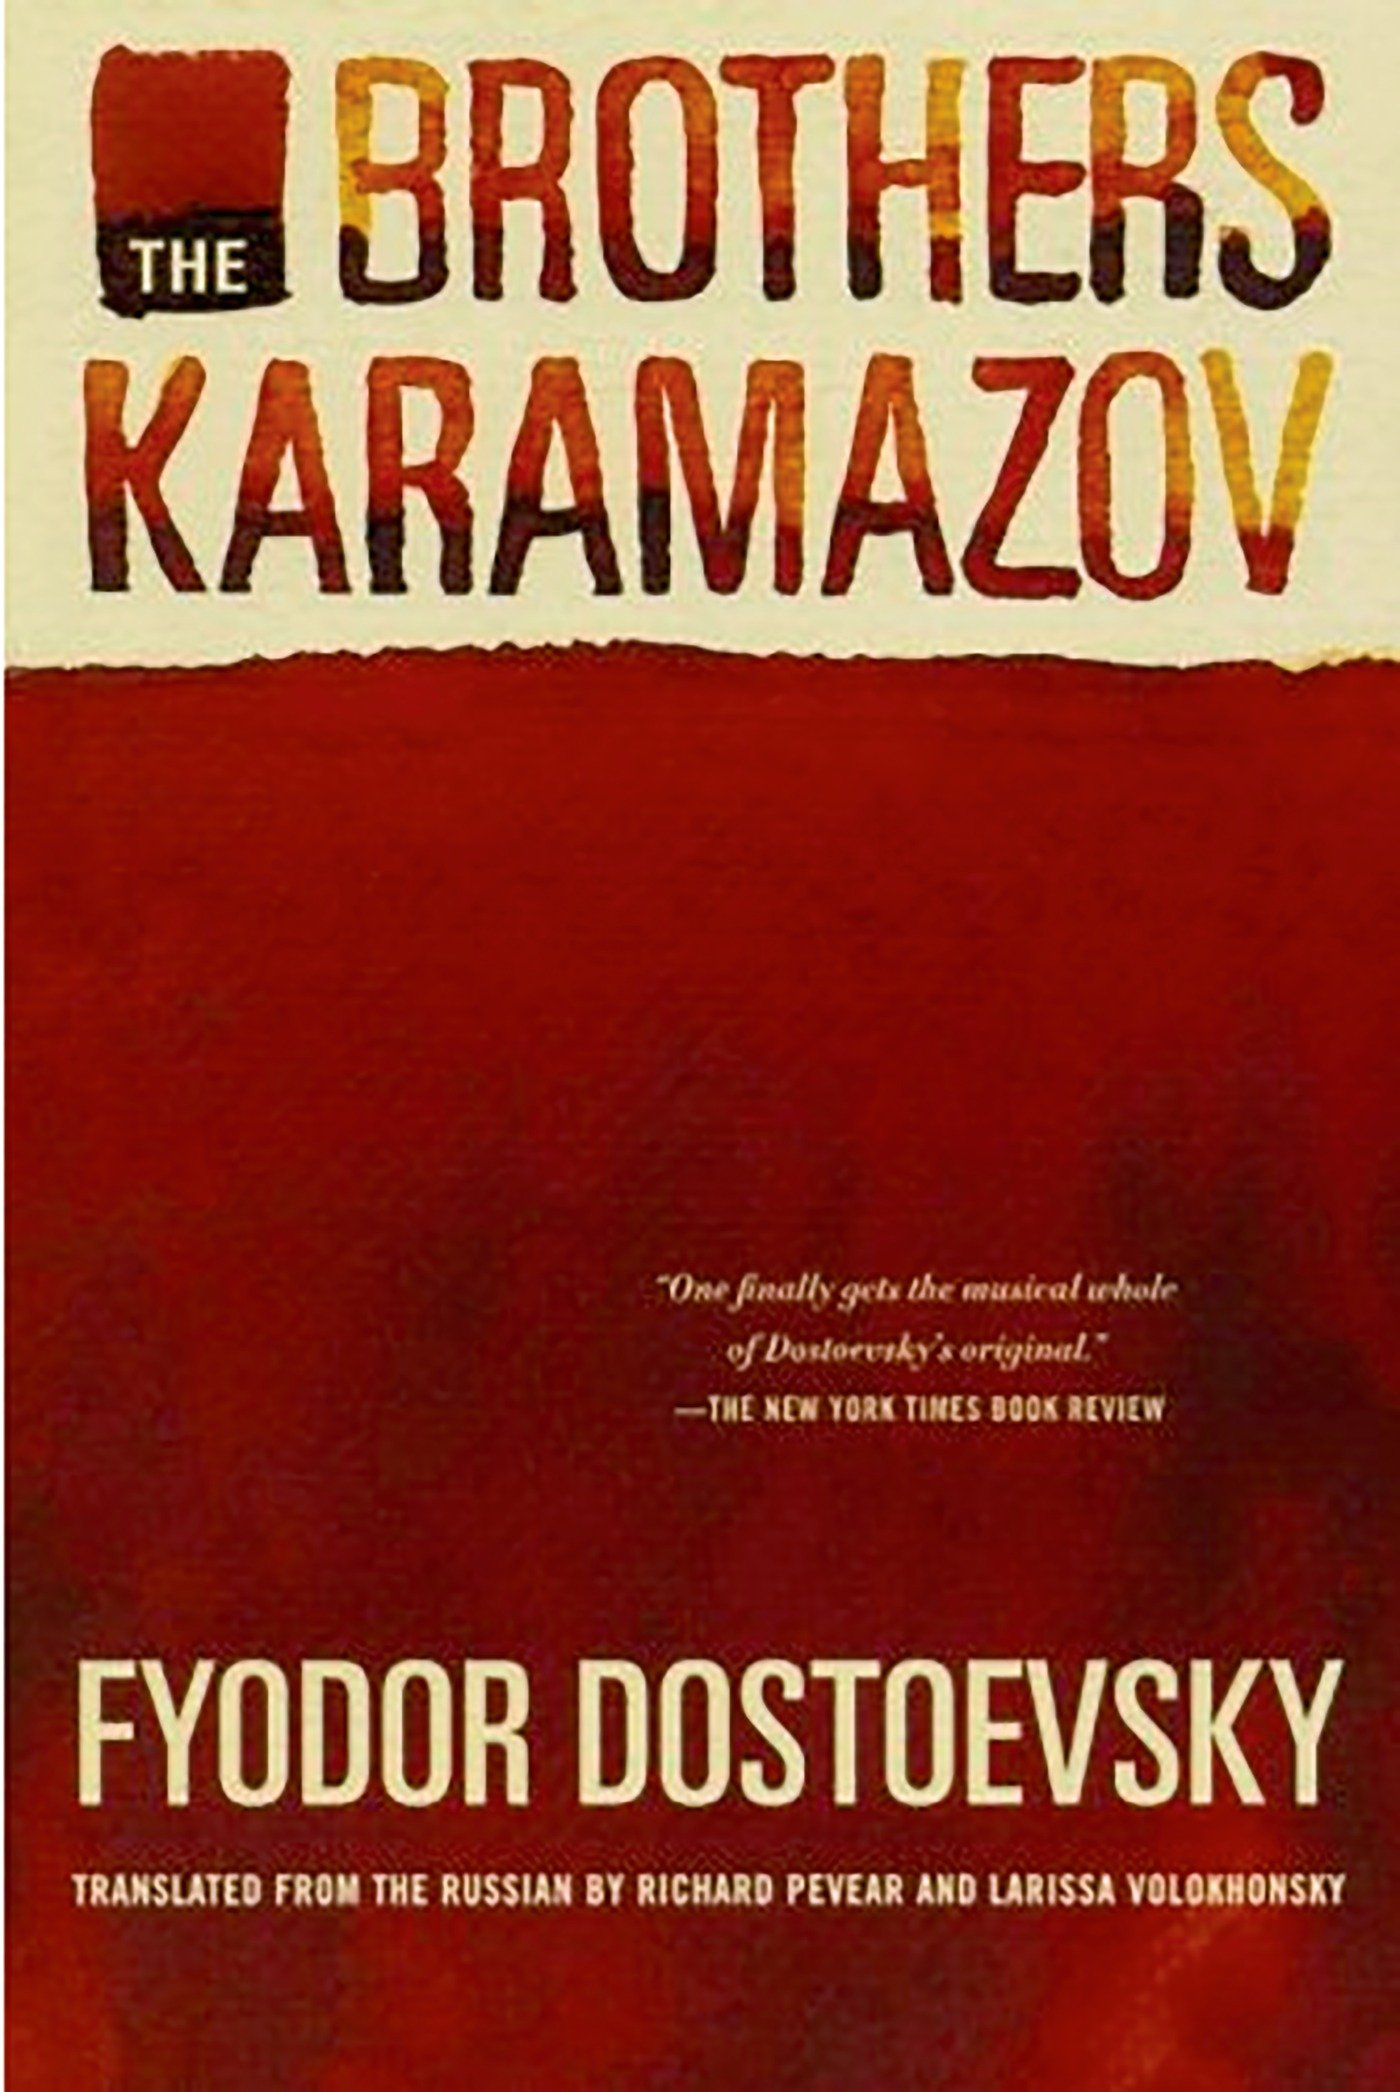 an analysis of the theme of children and their innocence in the brothers karamazov